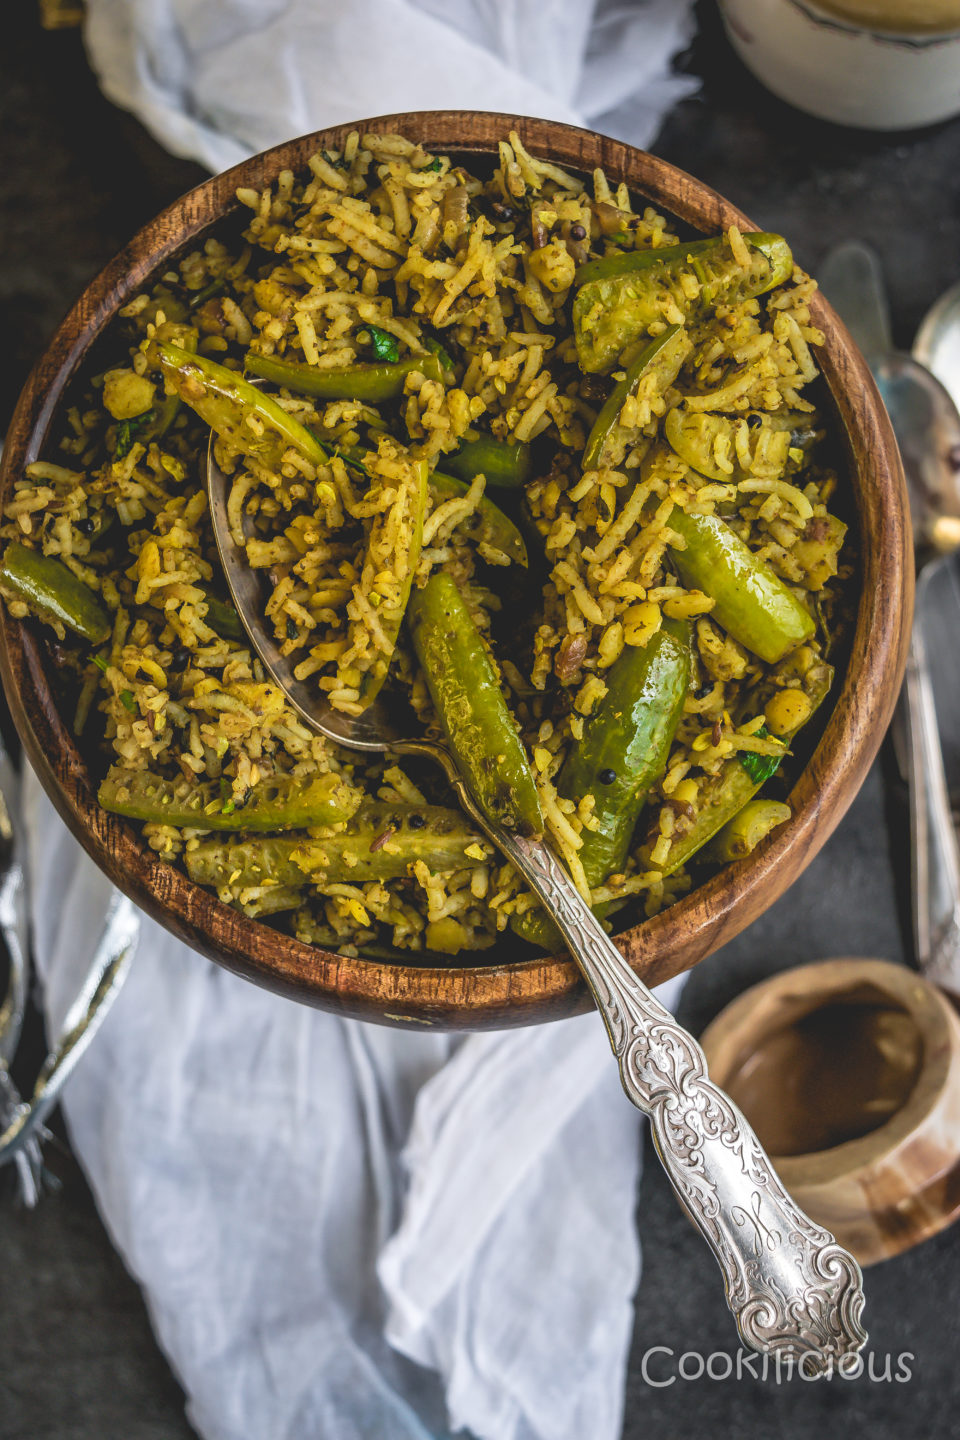 A spoon in a wooden bowl filled with Tendli Masala Bhaat | Ivy Gourd Masala Rice